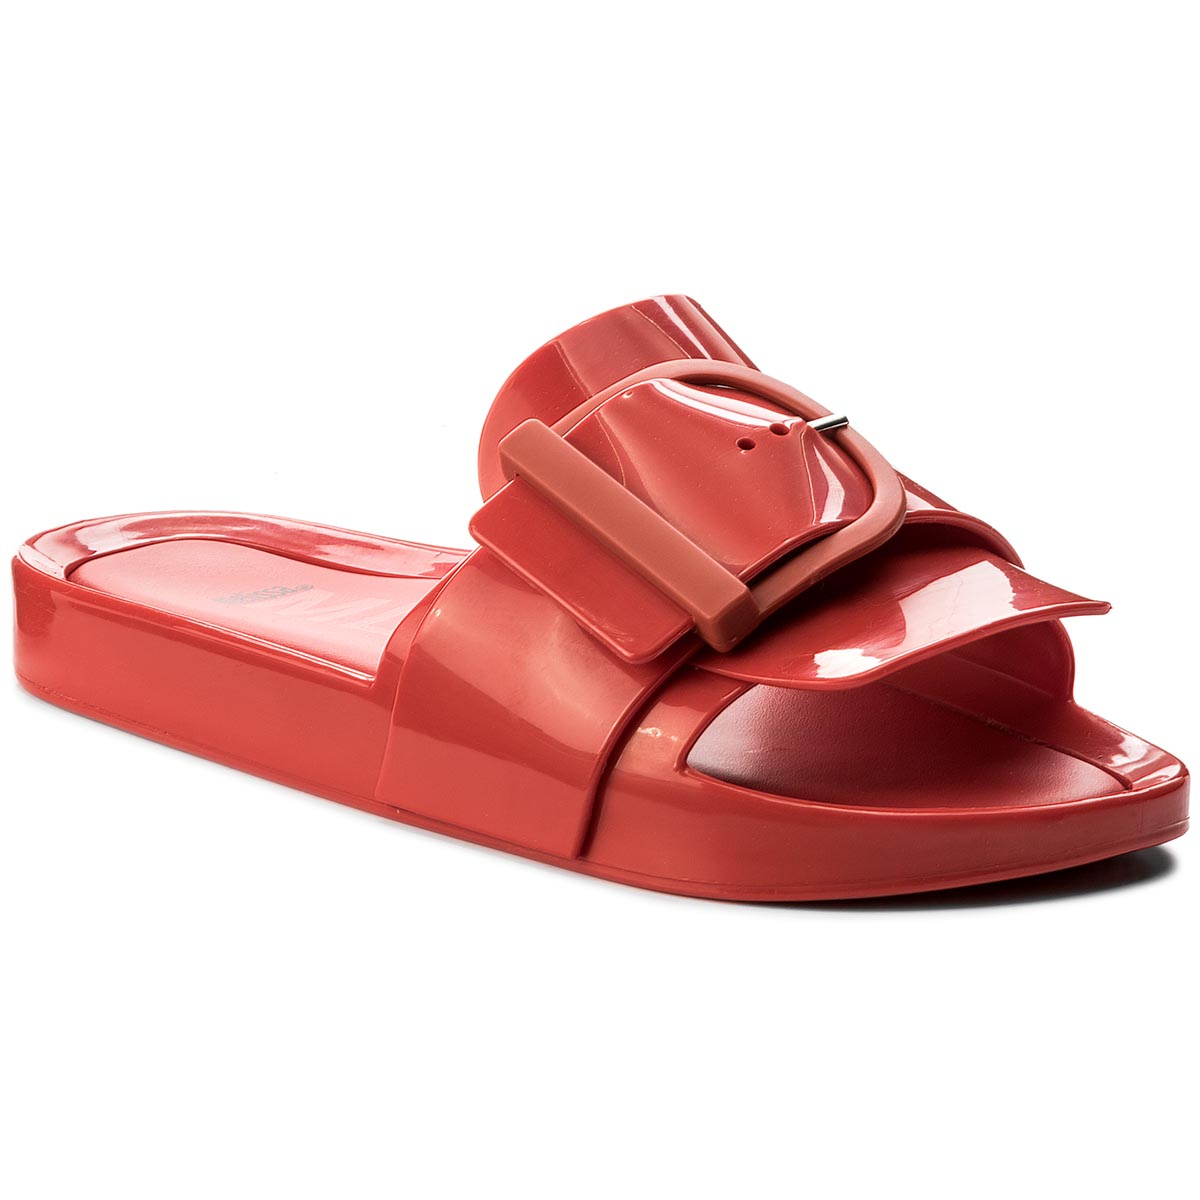 Klapki MELISSA - Beach Slide IV Ad 32286 Red 01371